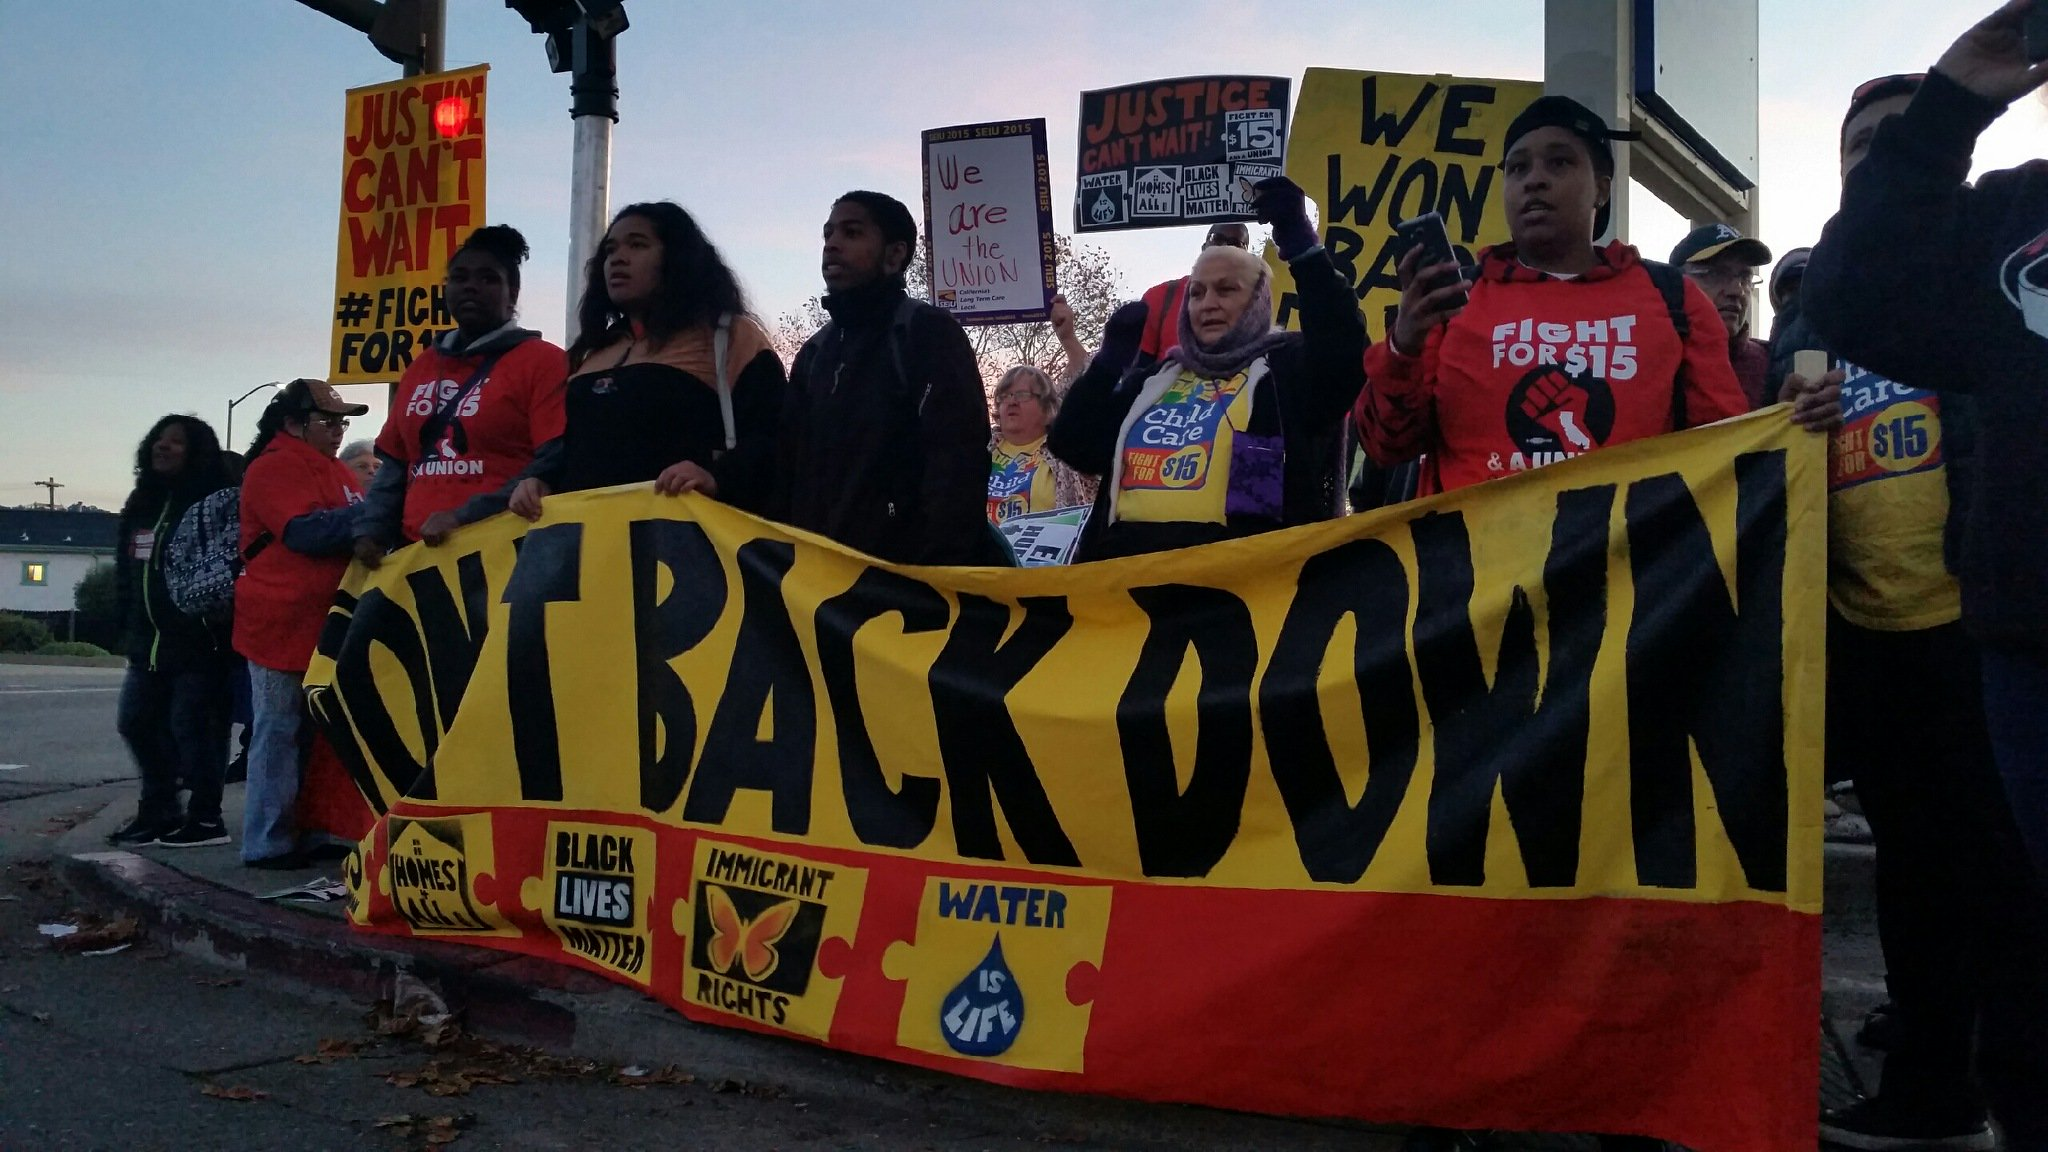 Looking strong in Oakland, CA this morning. We won't back down until the economy works for all! #Fightfor15 @NorCalFF15 https://t.co/ECiGfjCKkO